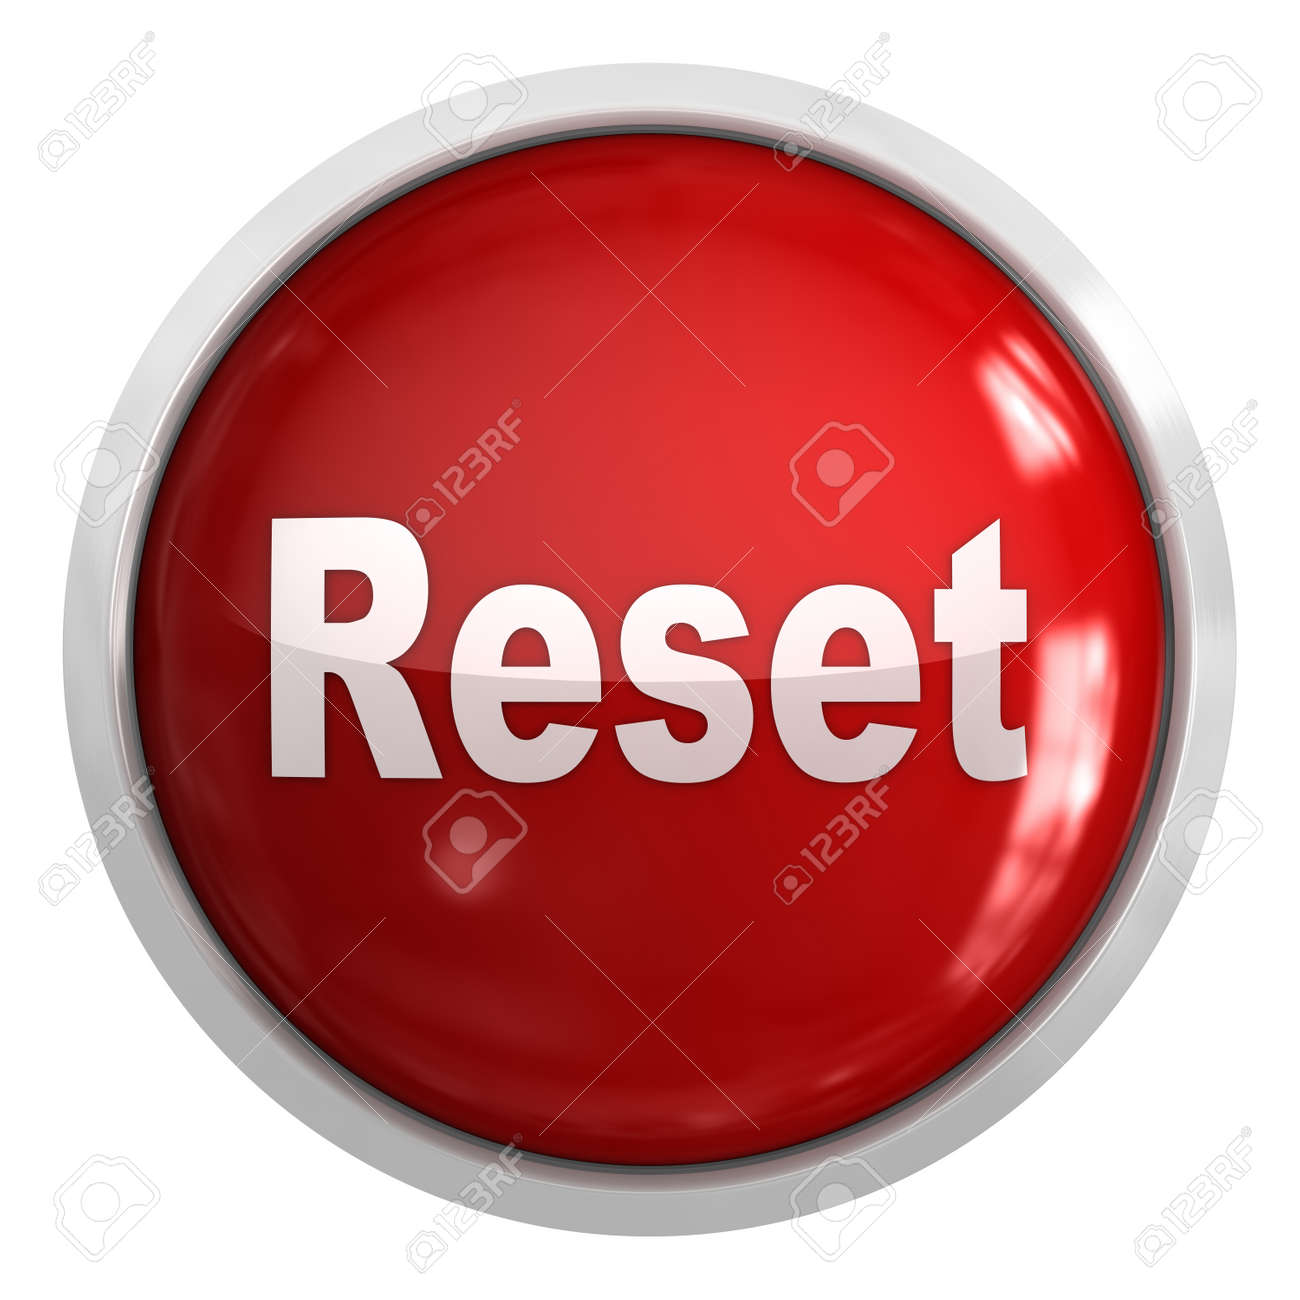 reset button this is a computer generated and 3d rendered picture